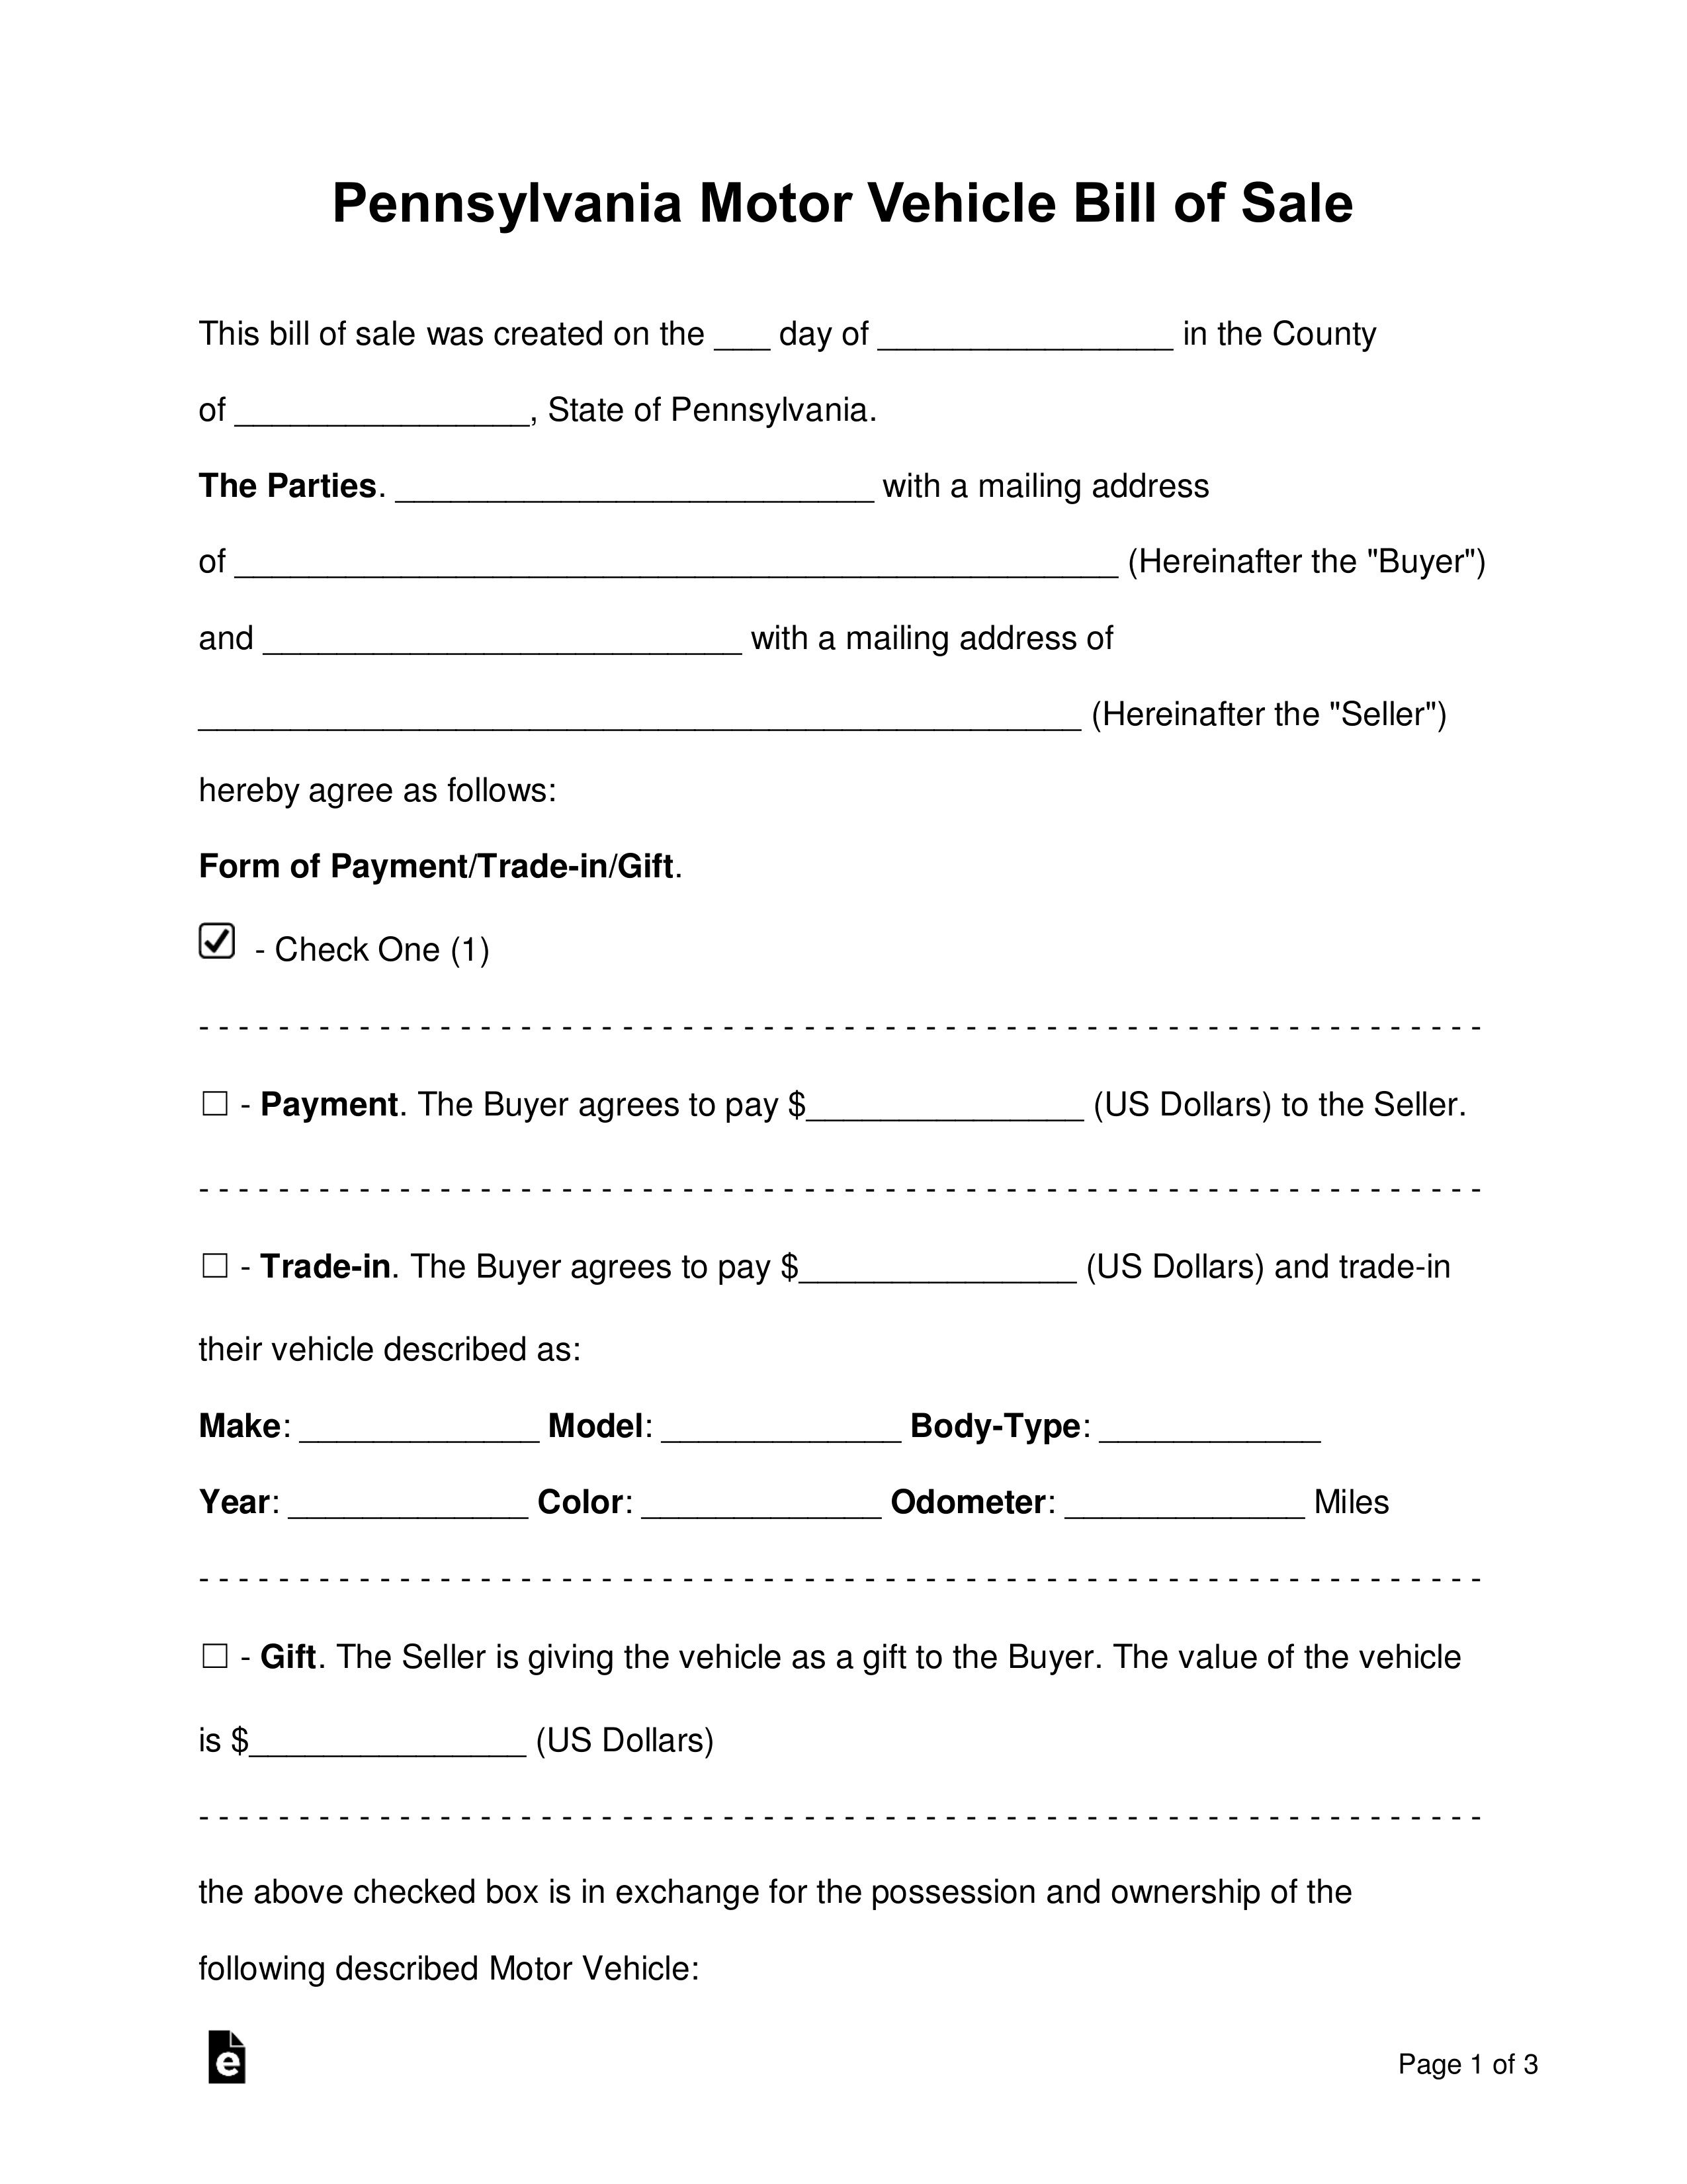 008 Singular Template For Bill Of Sale High Resolution  Example Trailer Free Mobile Home Used CarFull